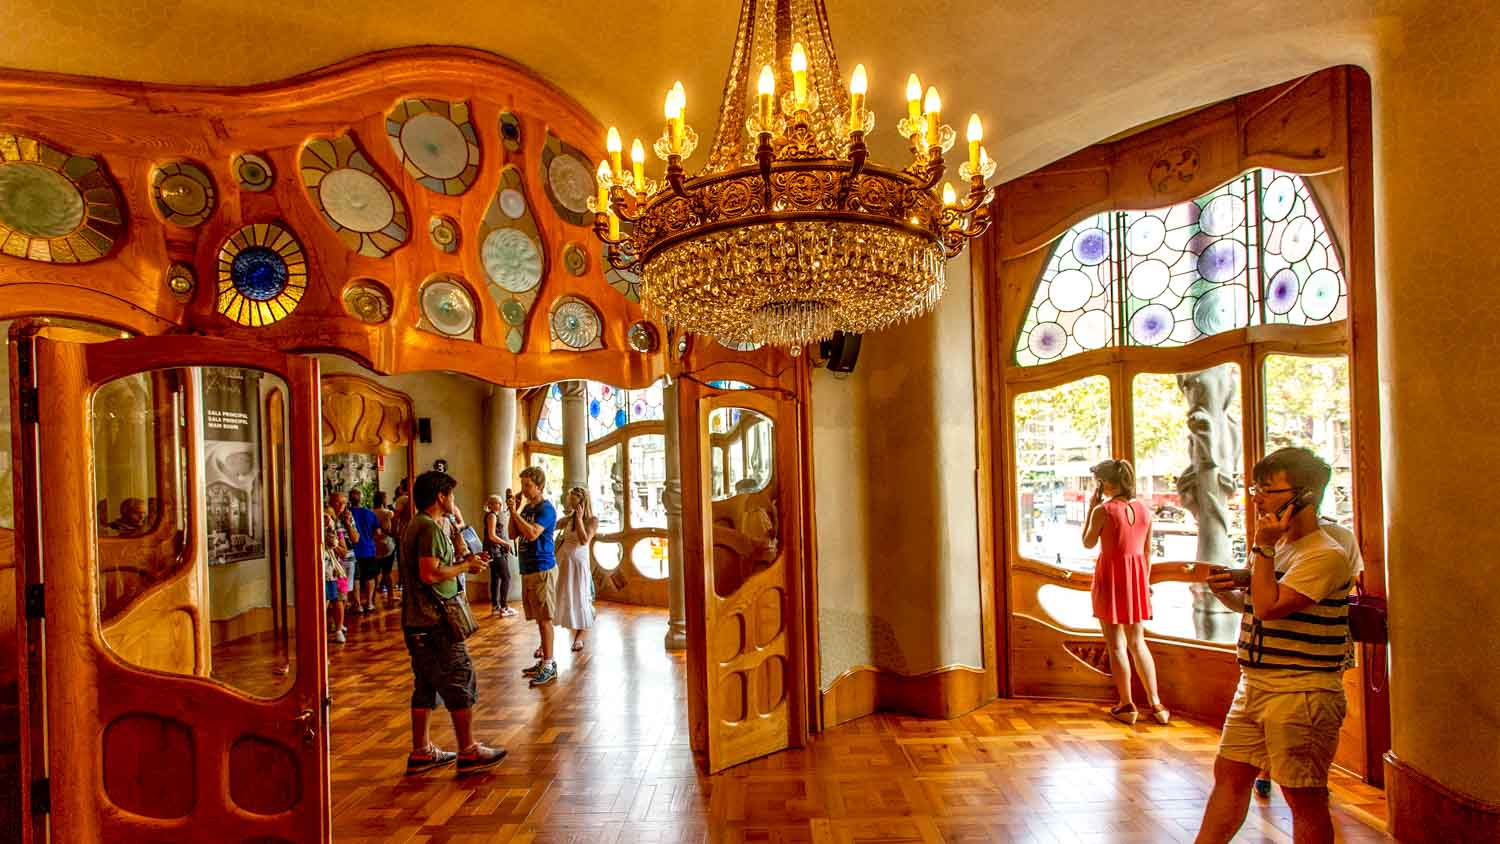 Casa Batll SkiptheLine Tickets TopRated Tours  More  Barcelona 2019  GetYourGuide